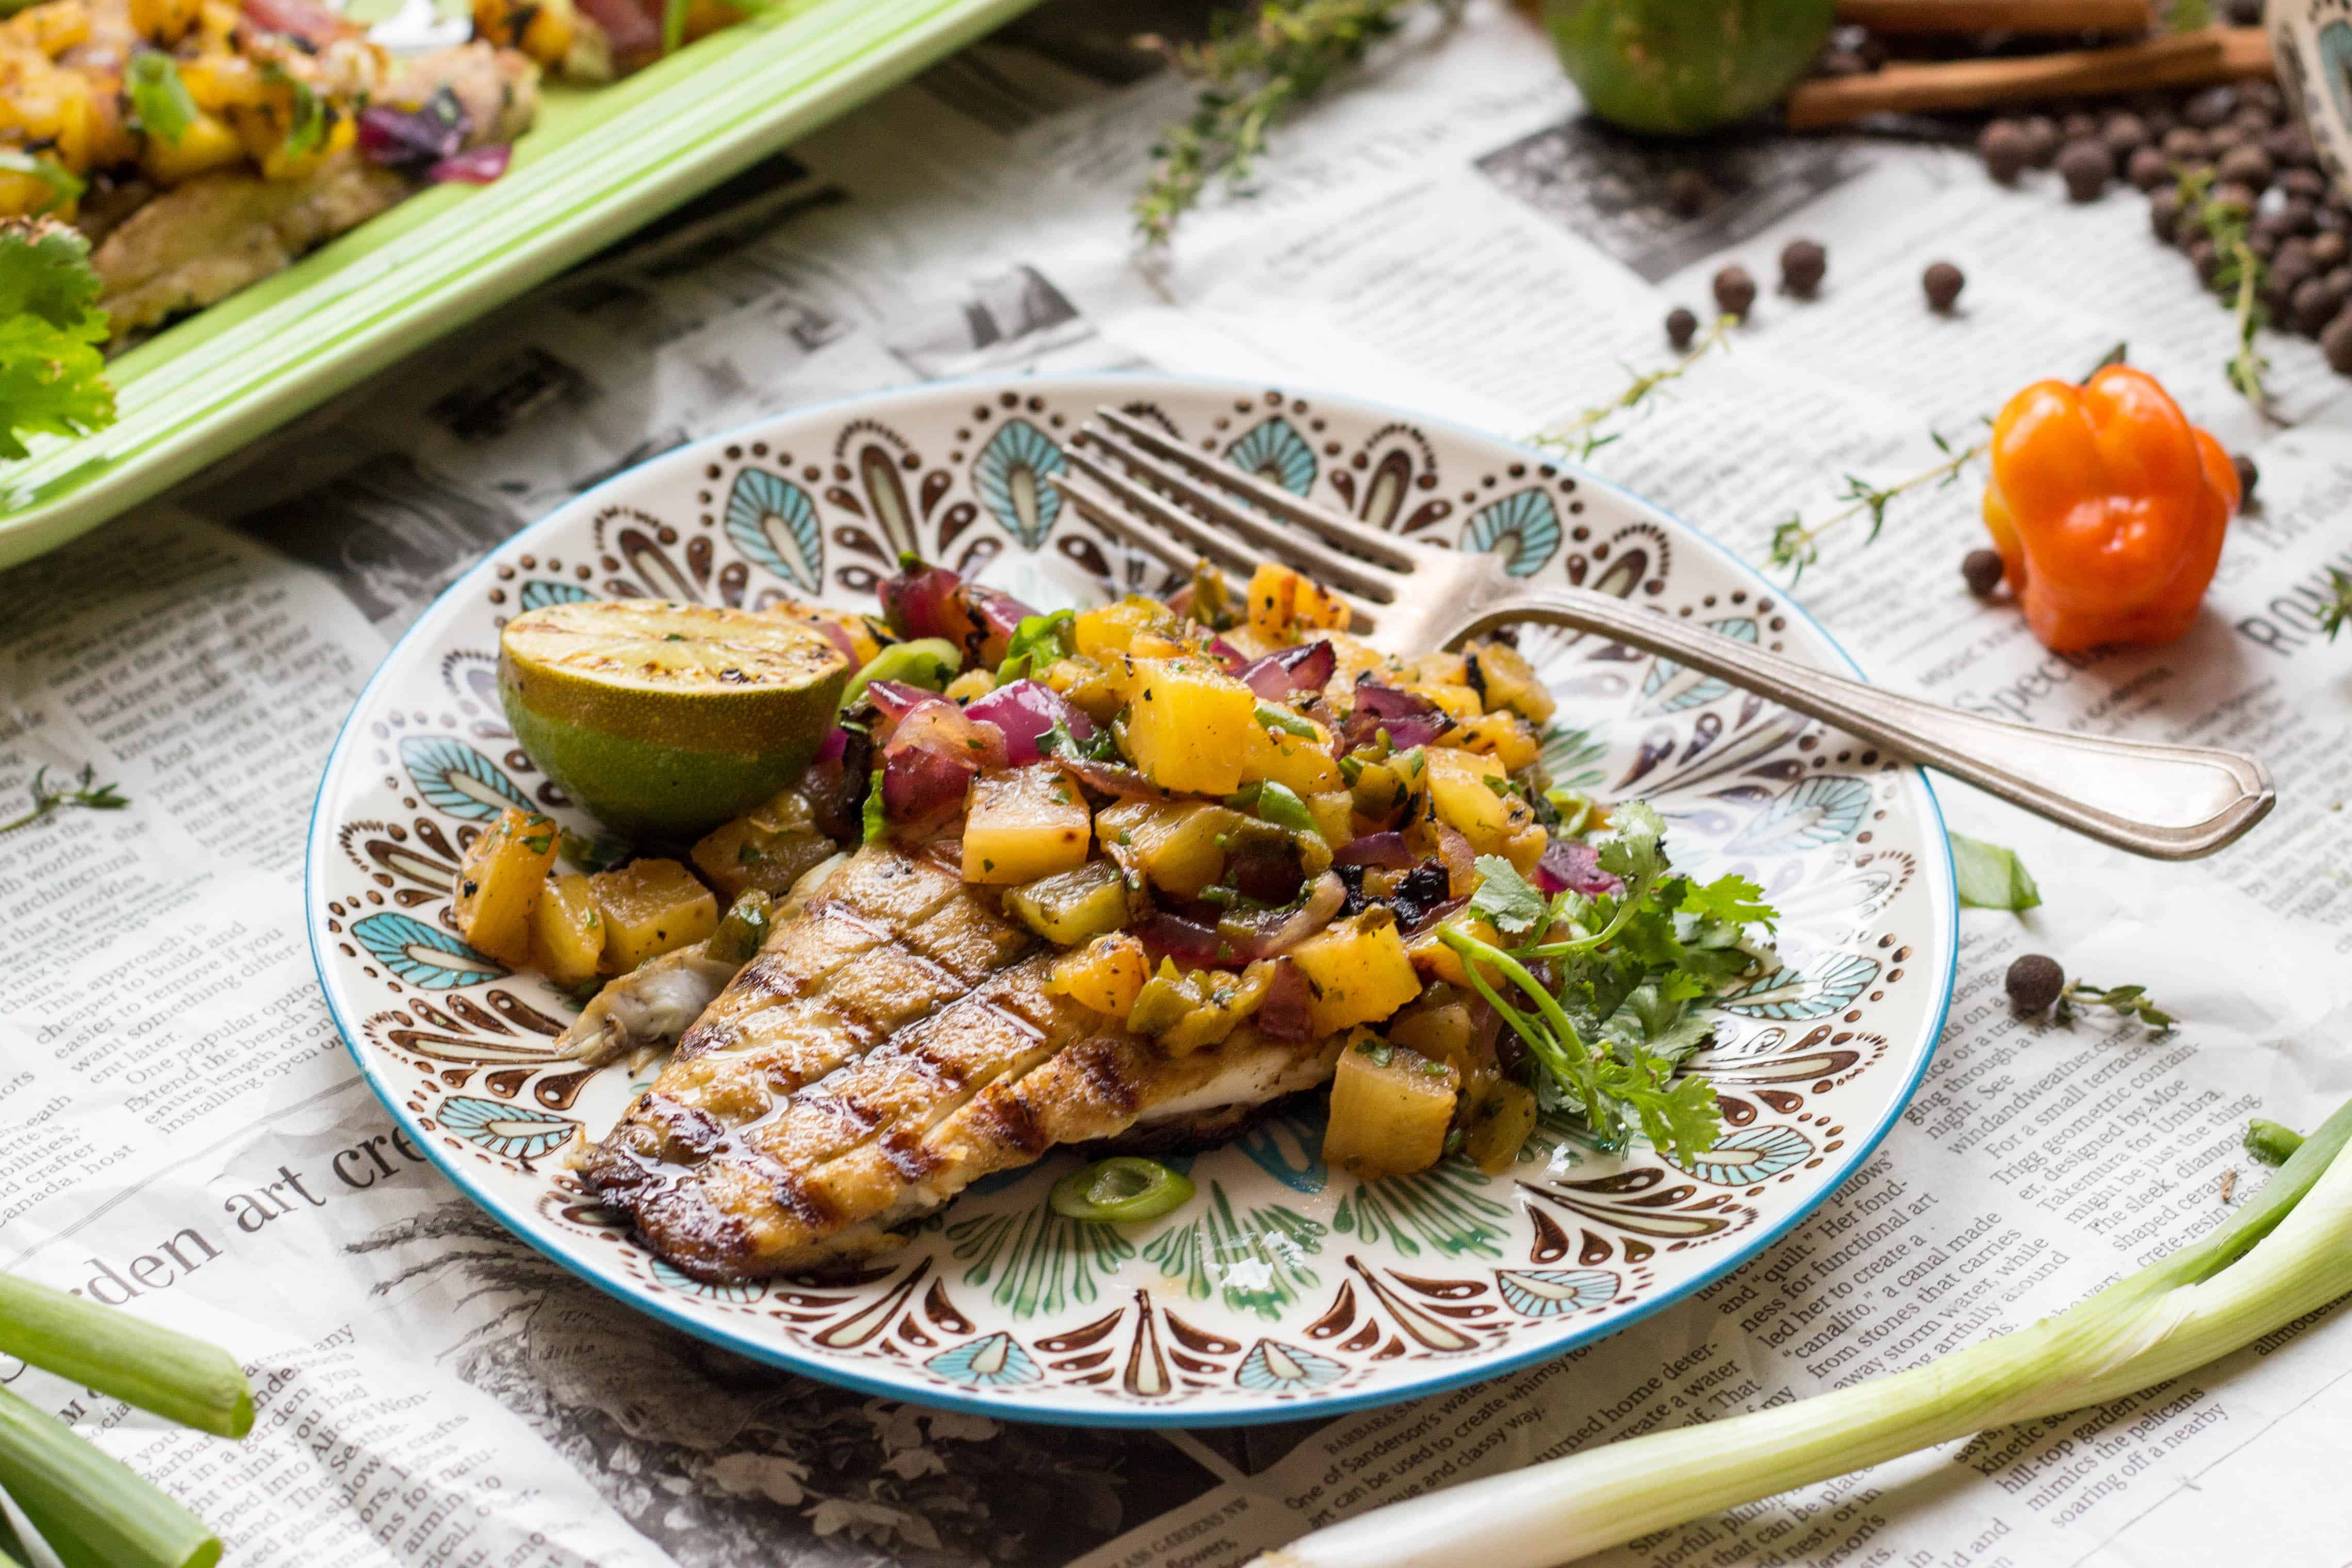 Patterned dinner plate and fork with a grilled barramundi fillet and fresh pineapple salsa with grilled limes.